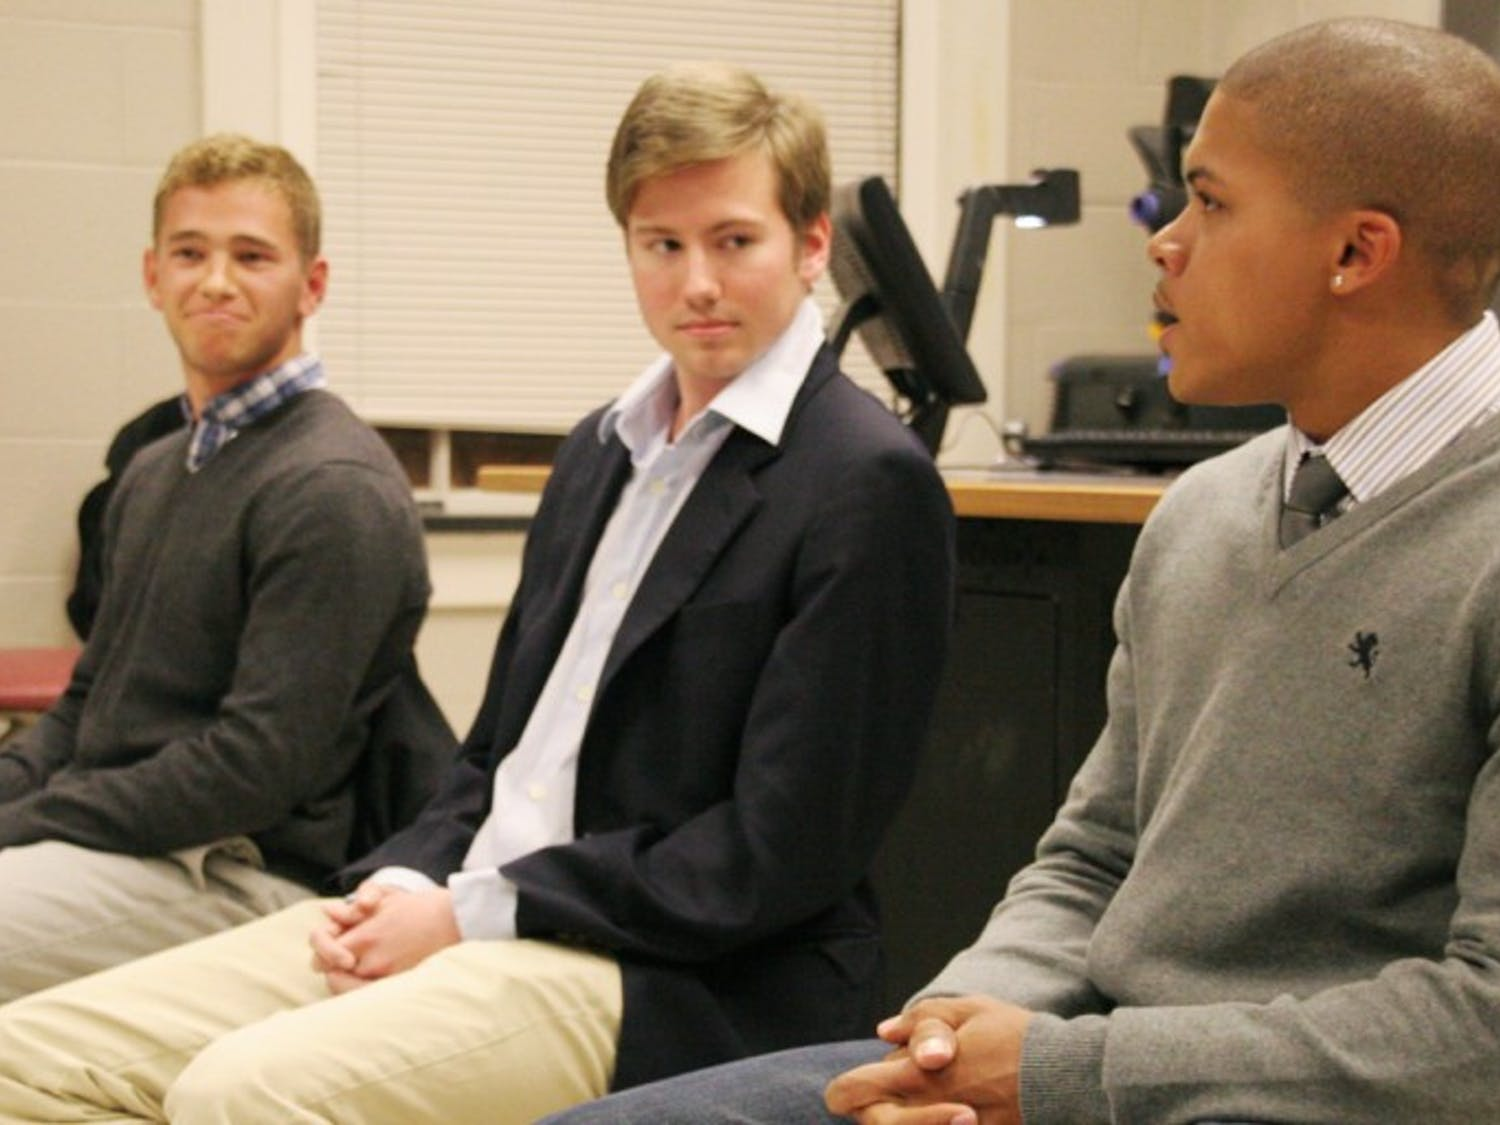 Will Leimenstoll-dark gray sweaterTim Longest-blue suitCalvin Lewis-light gray sweaterCollege Republican's Student Body President Debate, 6pm Feb. 6th in 307 Dey Hall (small classroom)Young Democrats Student Body President Forum, 7pm Feb. 6 in Manning 209 (large lecture hall)Students asking questionsAmy Hazle Wurst-exchange student from University of Sheffield (England), sophomore majoring in Politics and International Studies, asked about where candidates would look for investment opportunities Travis Crayton, junior Political Science/Public Policy double major, asked about the Town Council ordinance on North Side and about students living in North Side